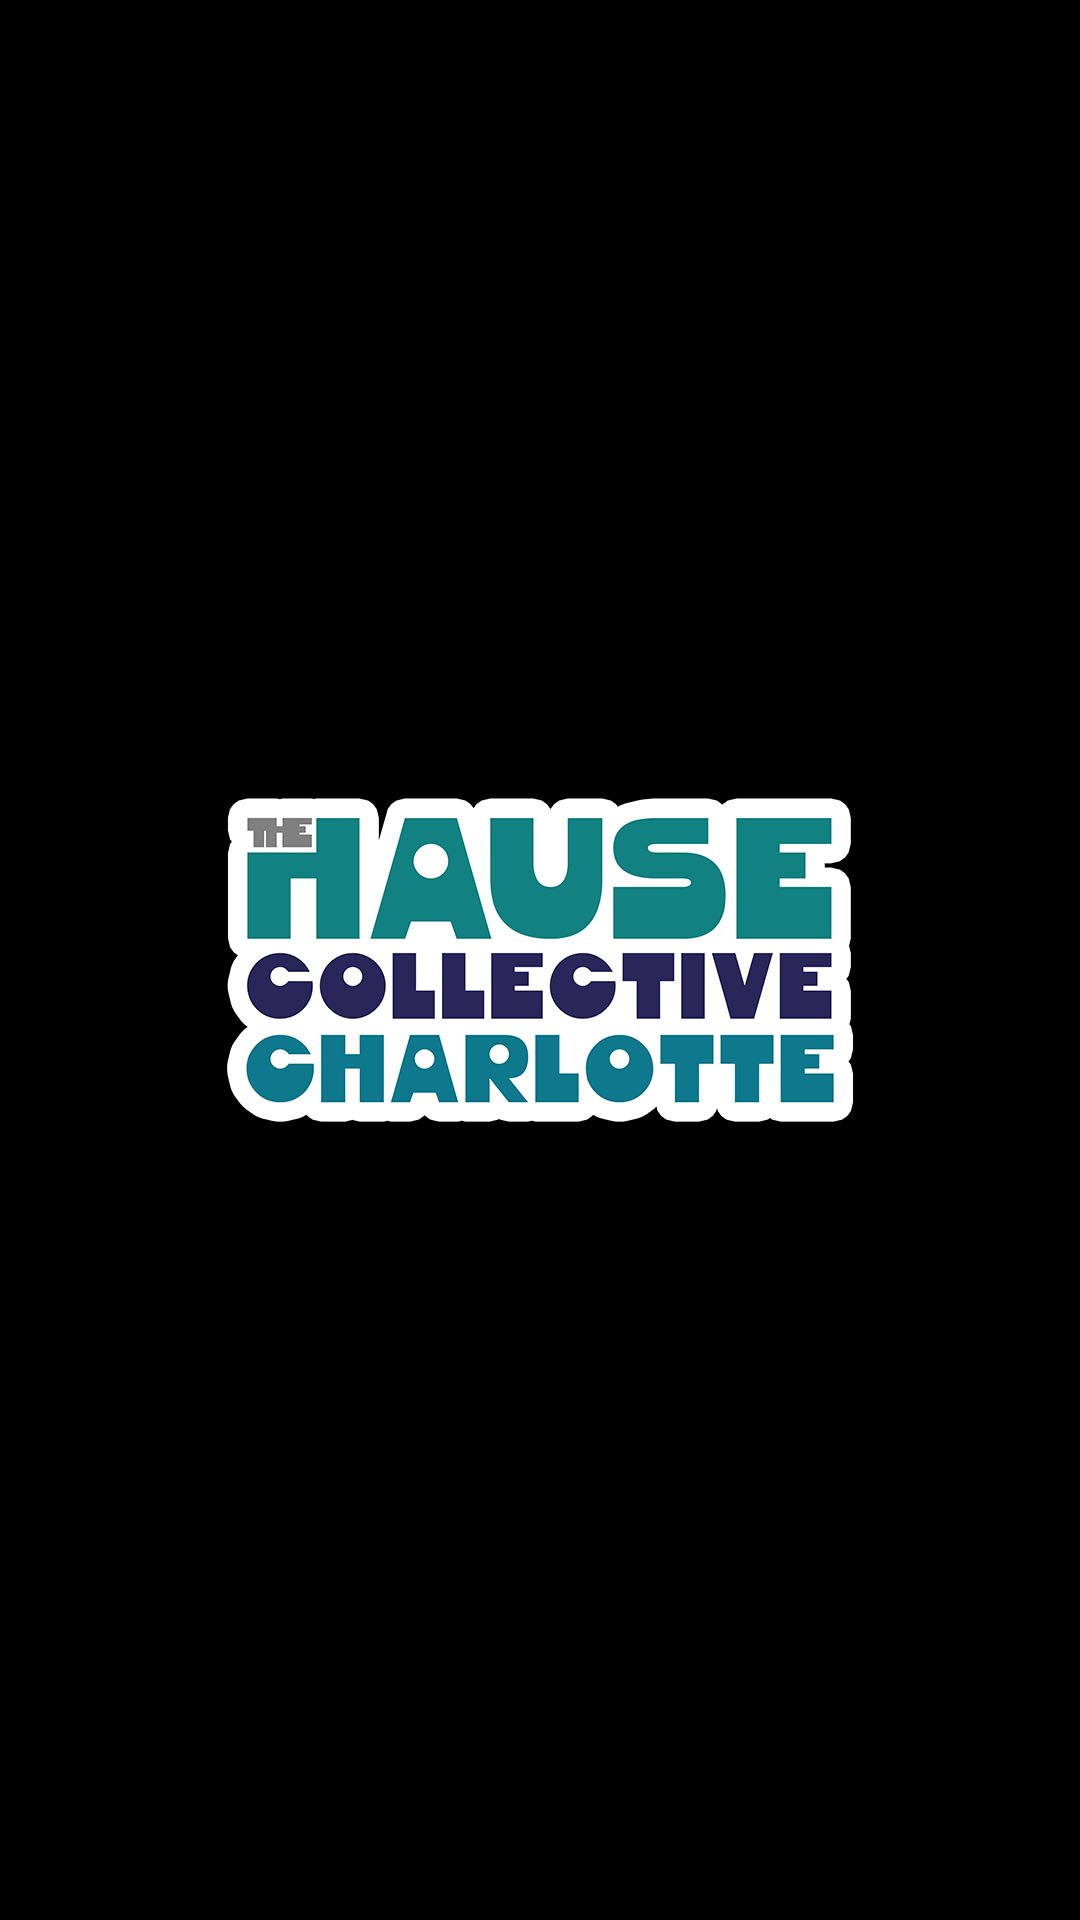 The Hause Collective Logo